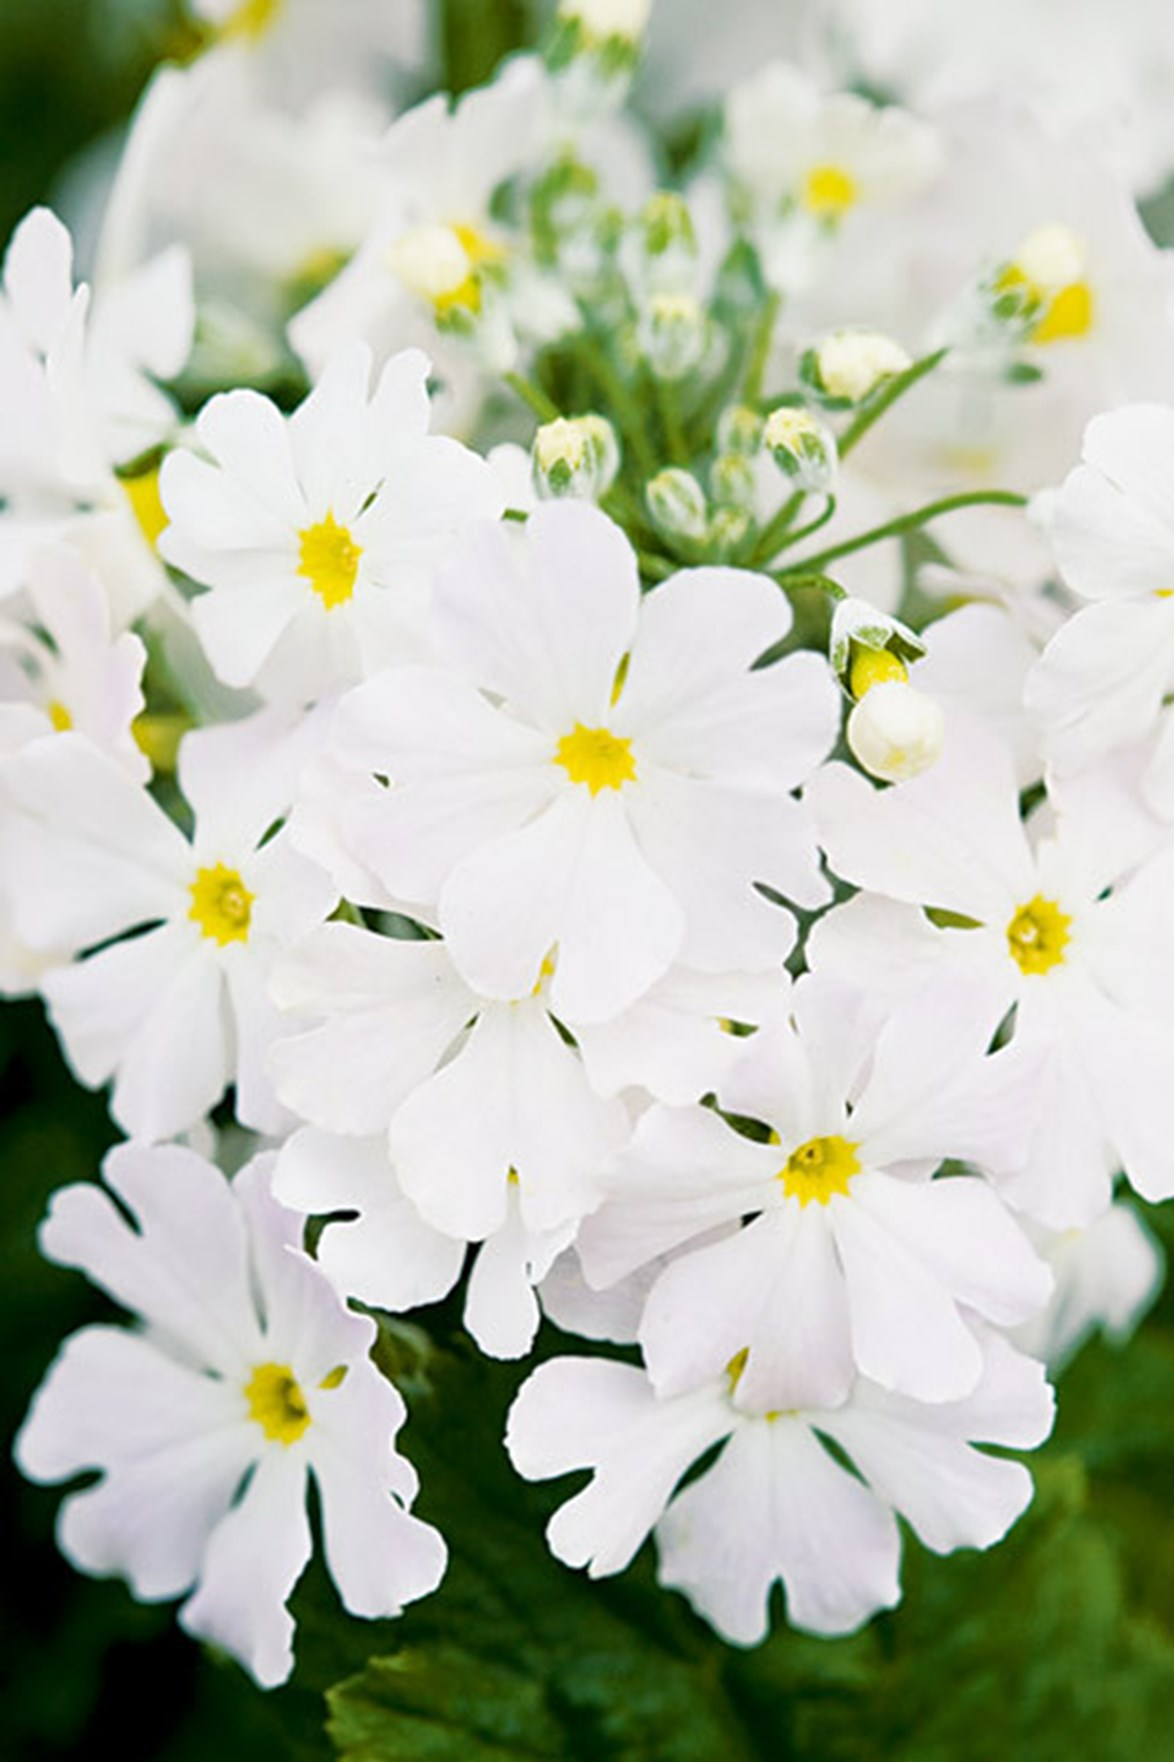 Don't be fooled by it's pretty flowers! Primrose is capable of causing a toxic reaction if eaten or touched.